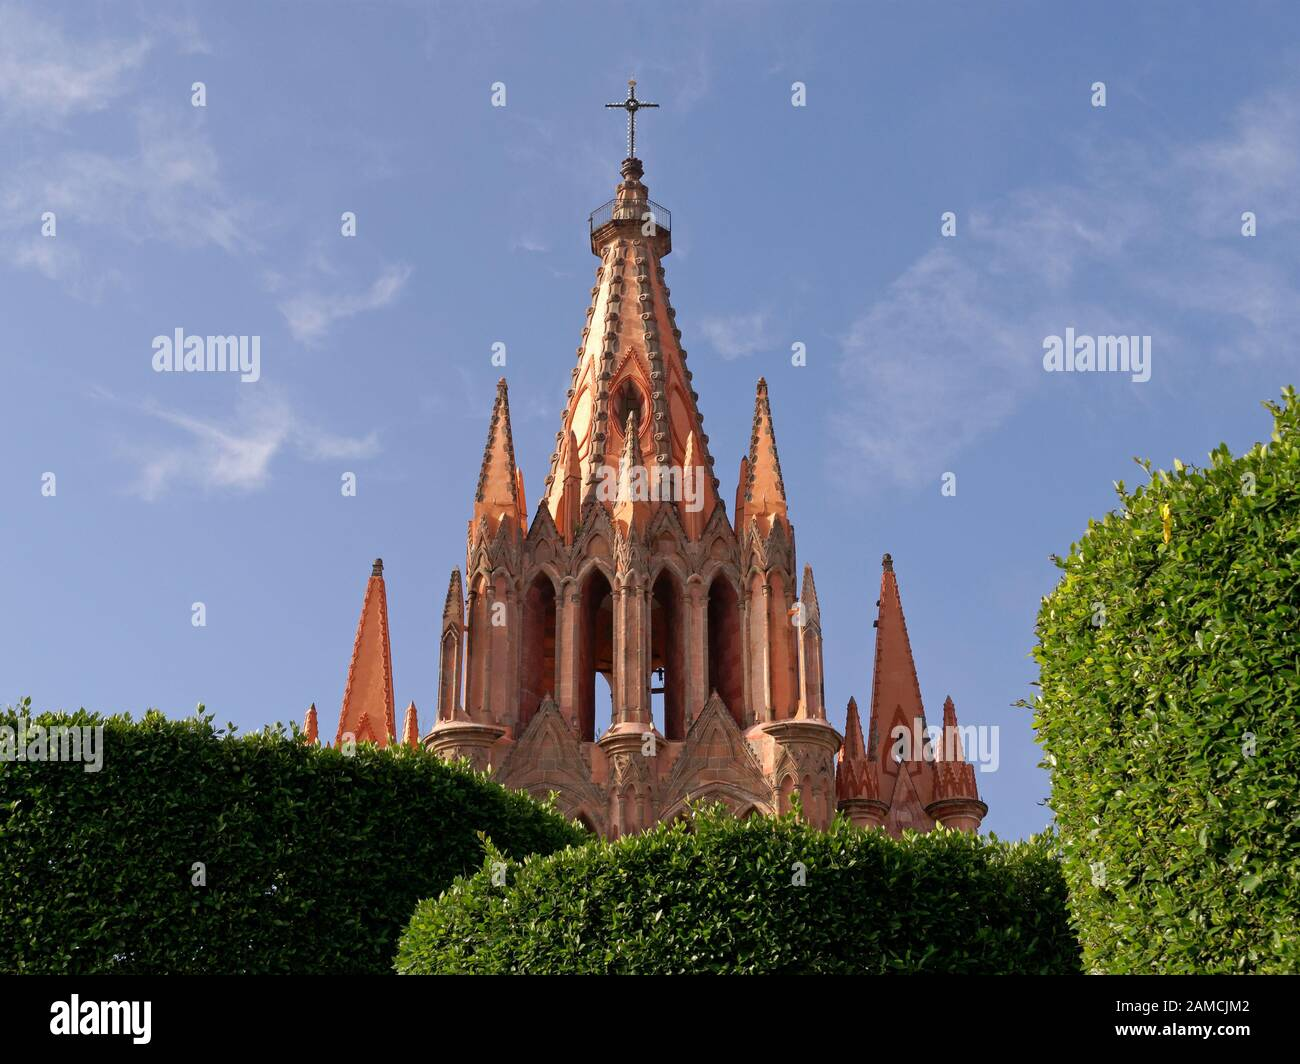 Steeple of the Parroquia de San Miguel Acangel parish church, San Miguel de Allende, Guanajuato, Mexico. Stock Photo